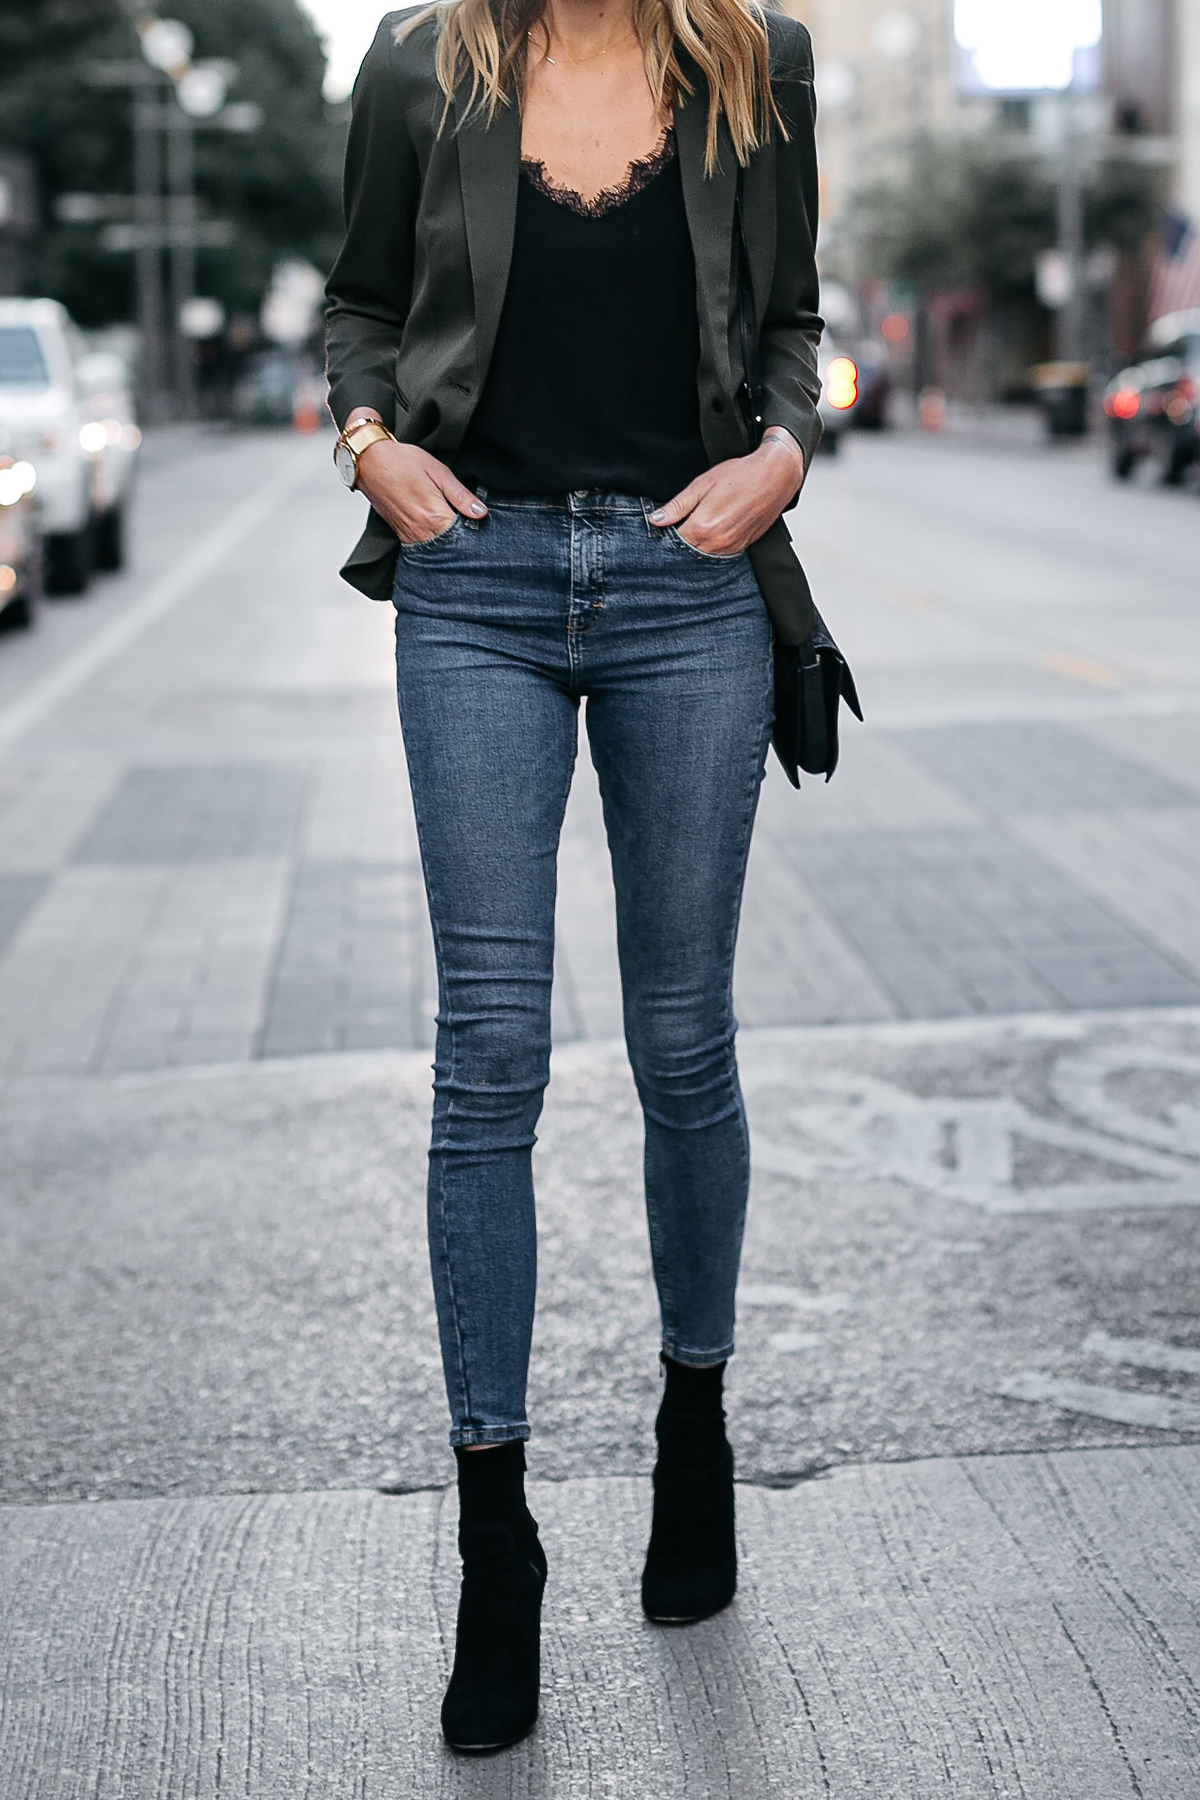 Everlane Olive Green Blazer Anine Bing Black Lace Cami Topshop Denim Skinny Jeans Club Monaco Black Booties Fashion Jackson Dallas Blogger Fashion Blogger Street Style